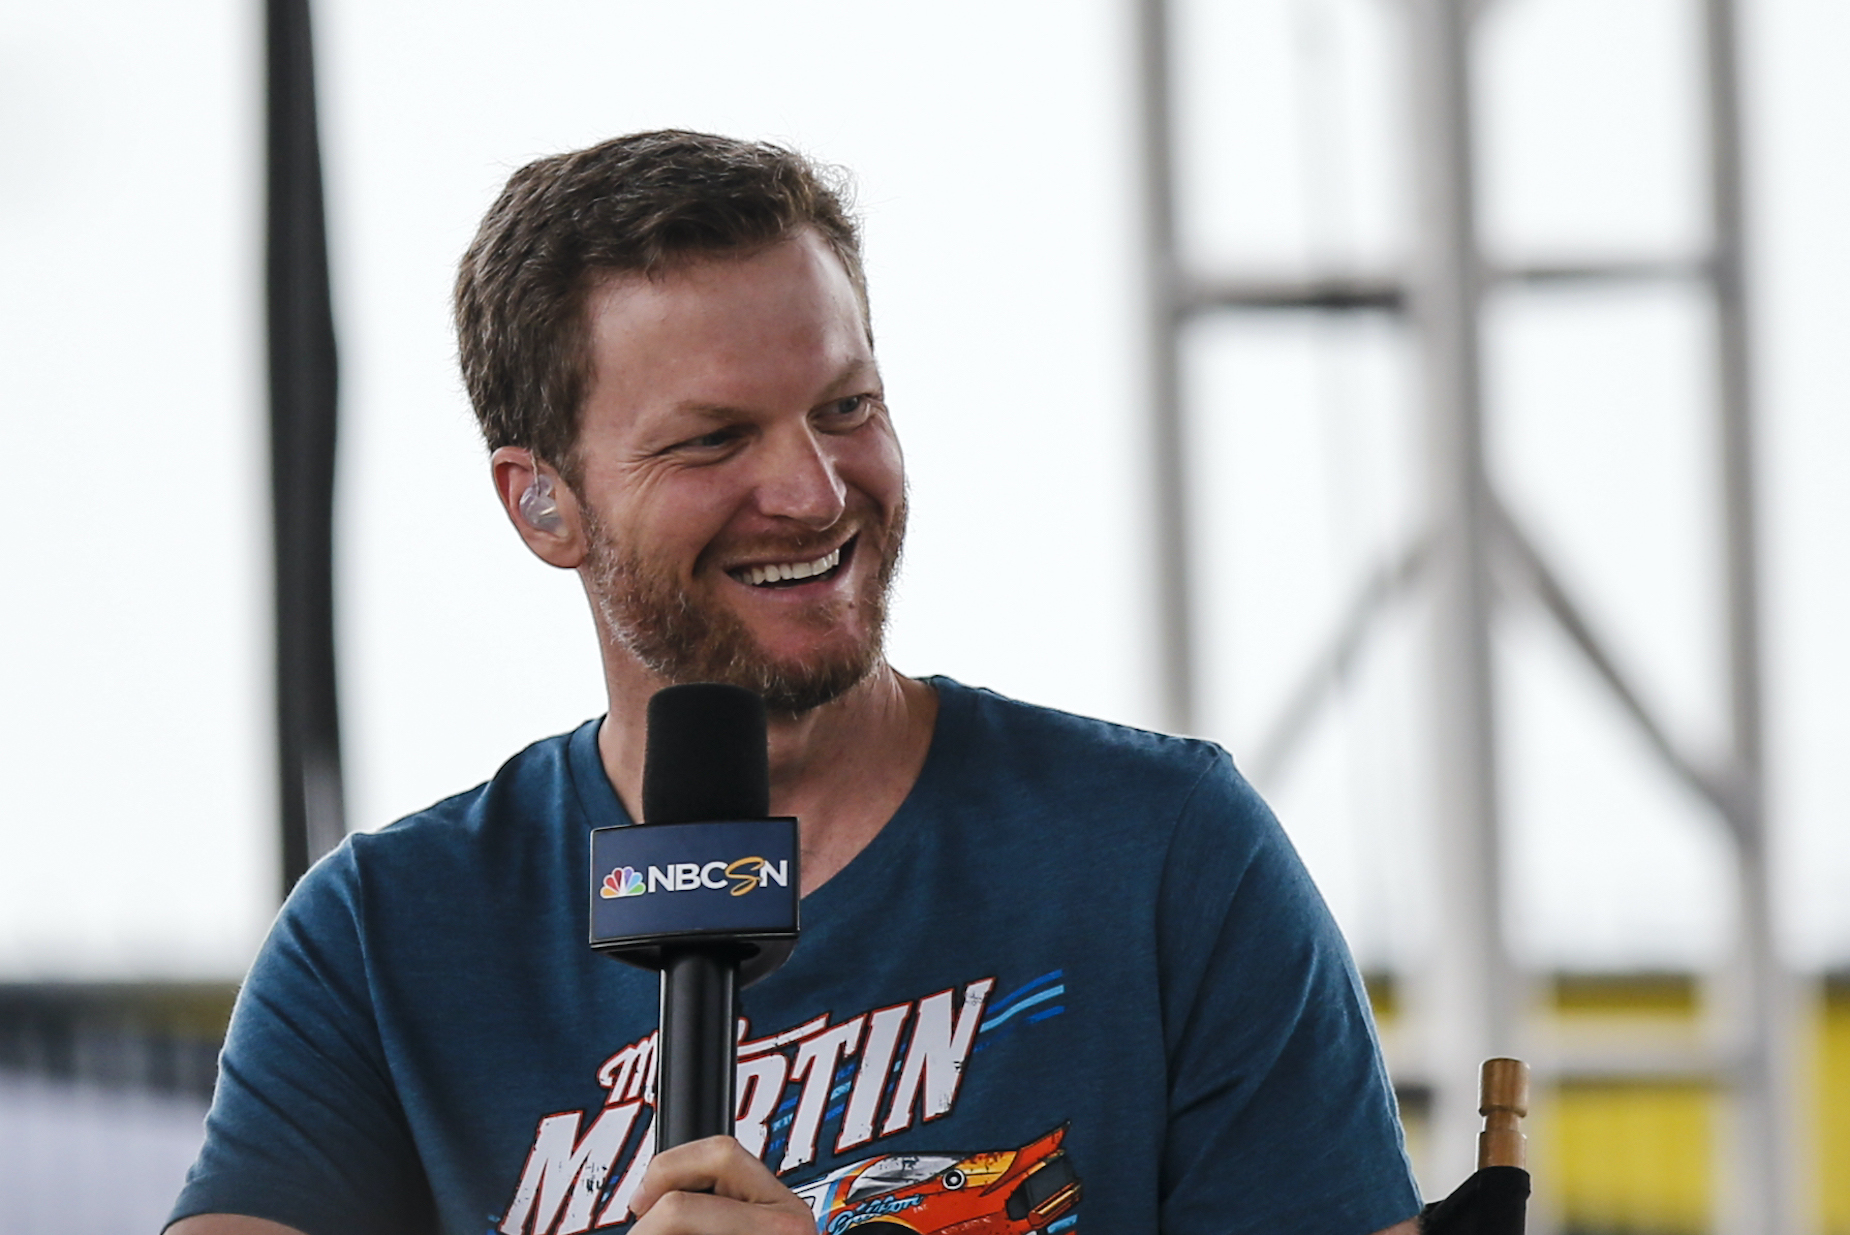 NASCAR star Dale Earnhardt Jr. smiles while holding a microphone